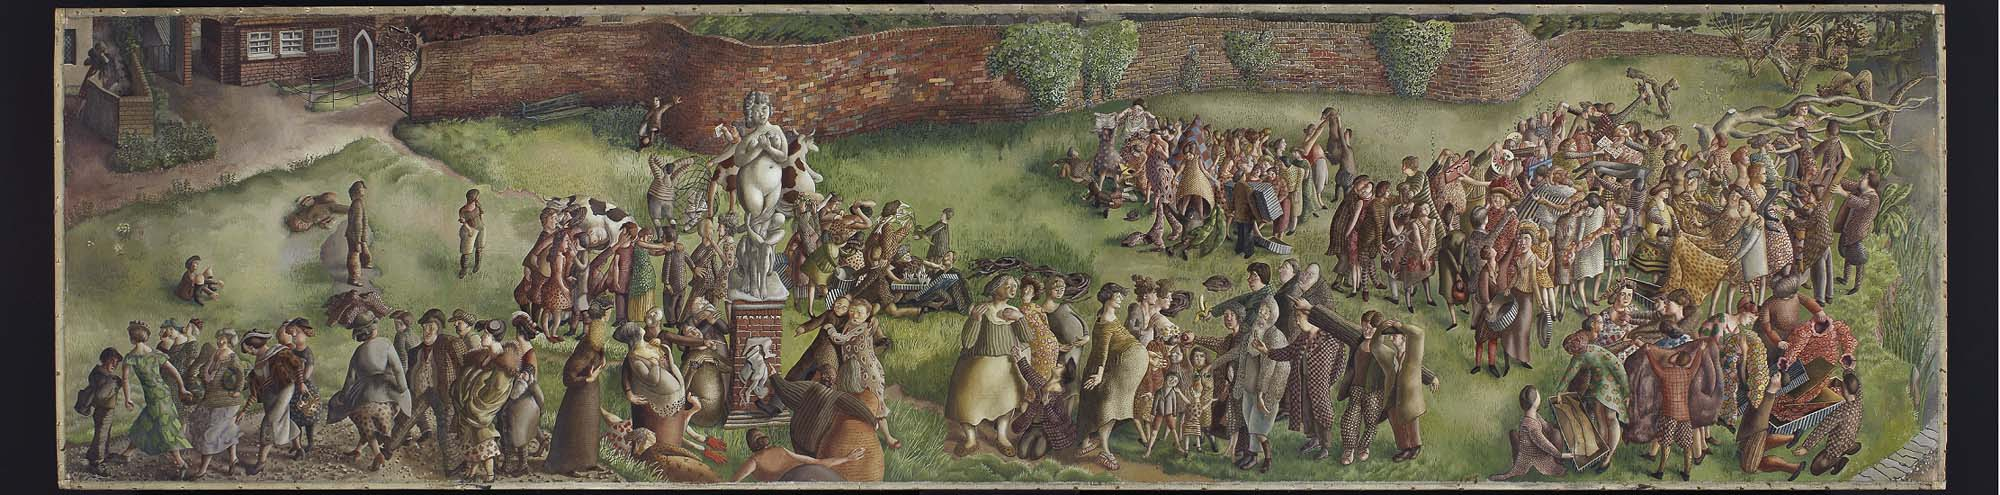 a panoramic painting showing people in a park wandering around the base of a venus statue